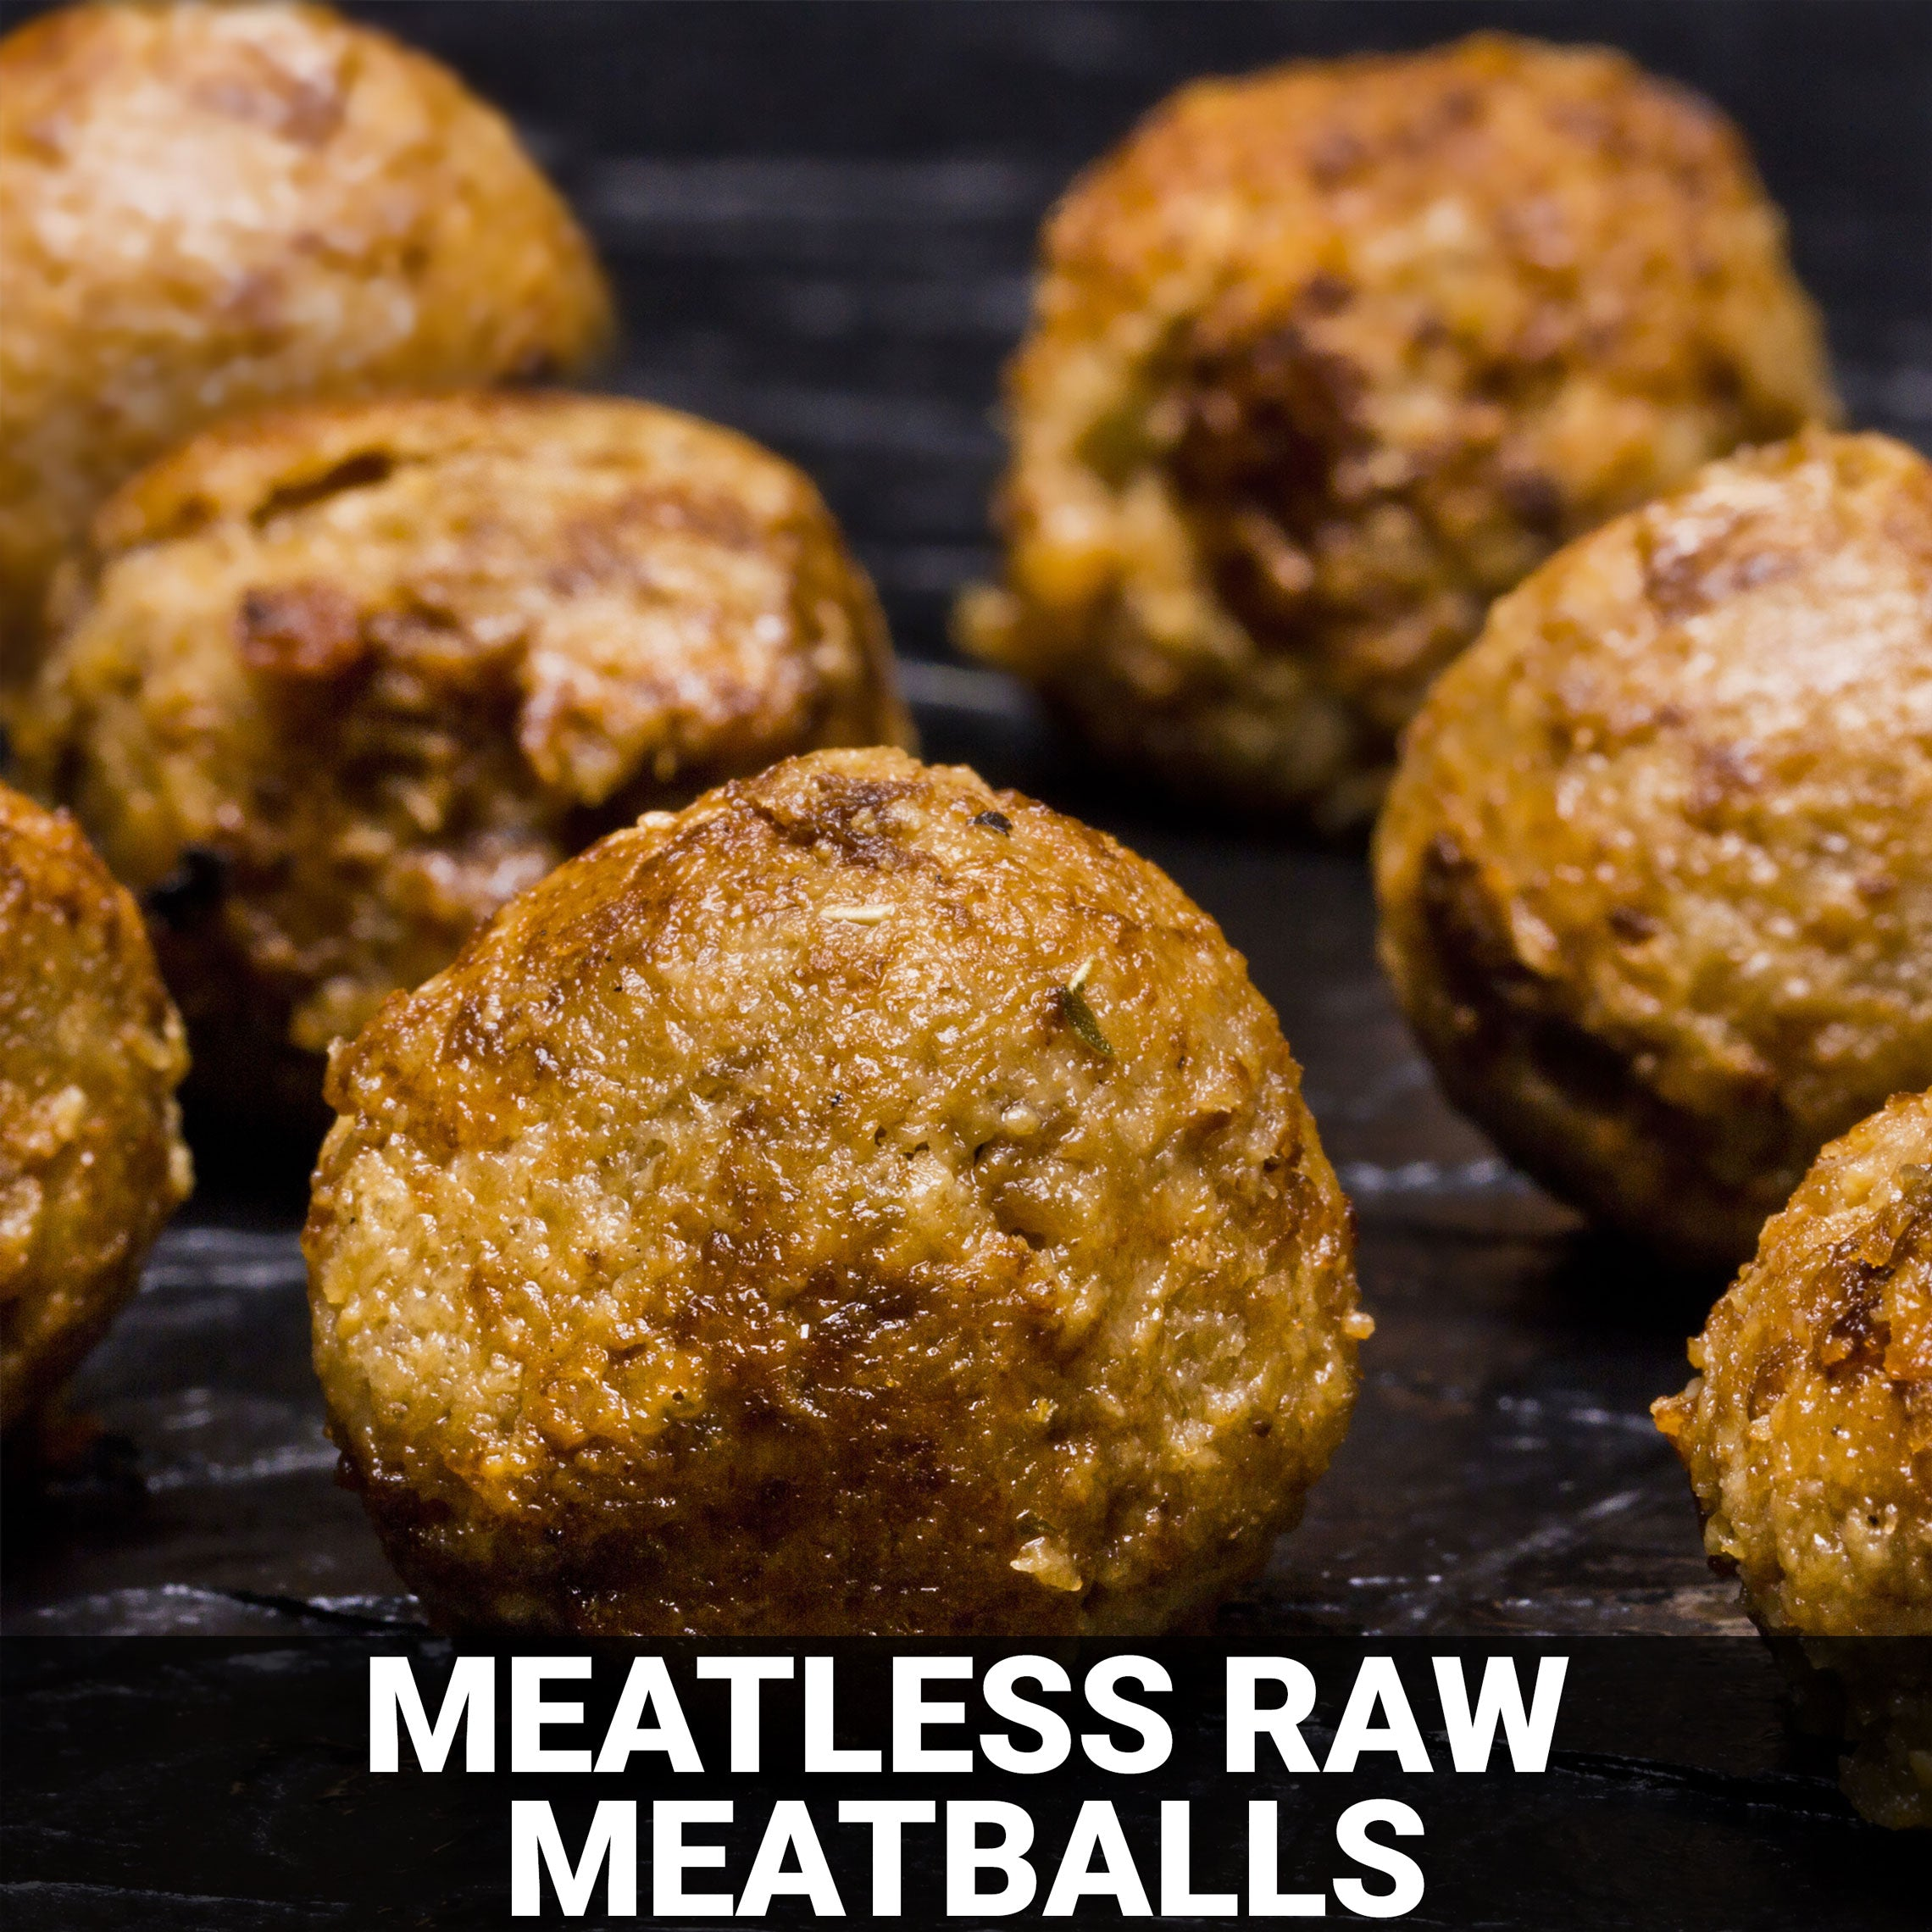 Meatless Raw Meatballs Recipe - Foods Alive